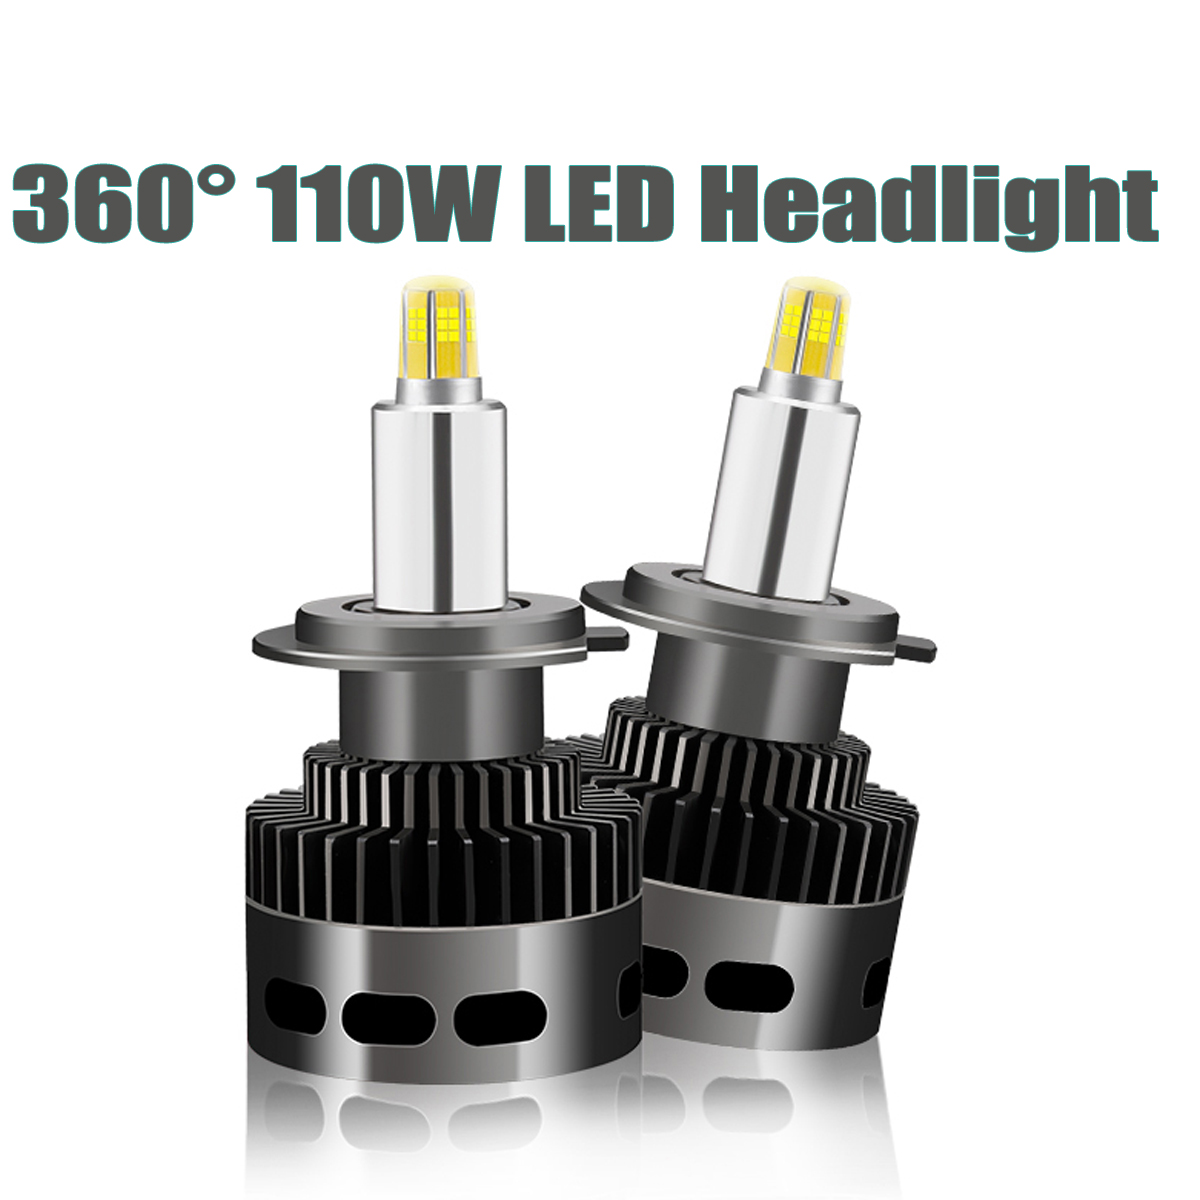 2pcs 110W 14500LM Car <font><b>LED</b></font> <font><b>Headlight</b></font> Bubls Mini <font><b>Headlight</b></font> Kit for <font><b>360</b></font> 3D stereo light Bulb fog Light 6500k White H1 H7 H11 9006 image